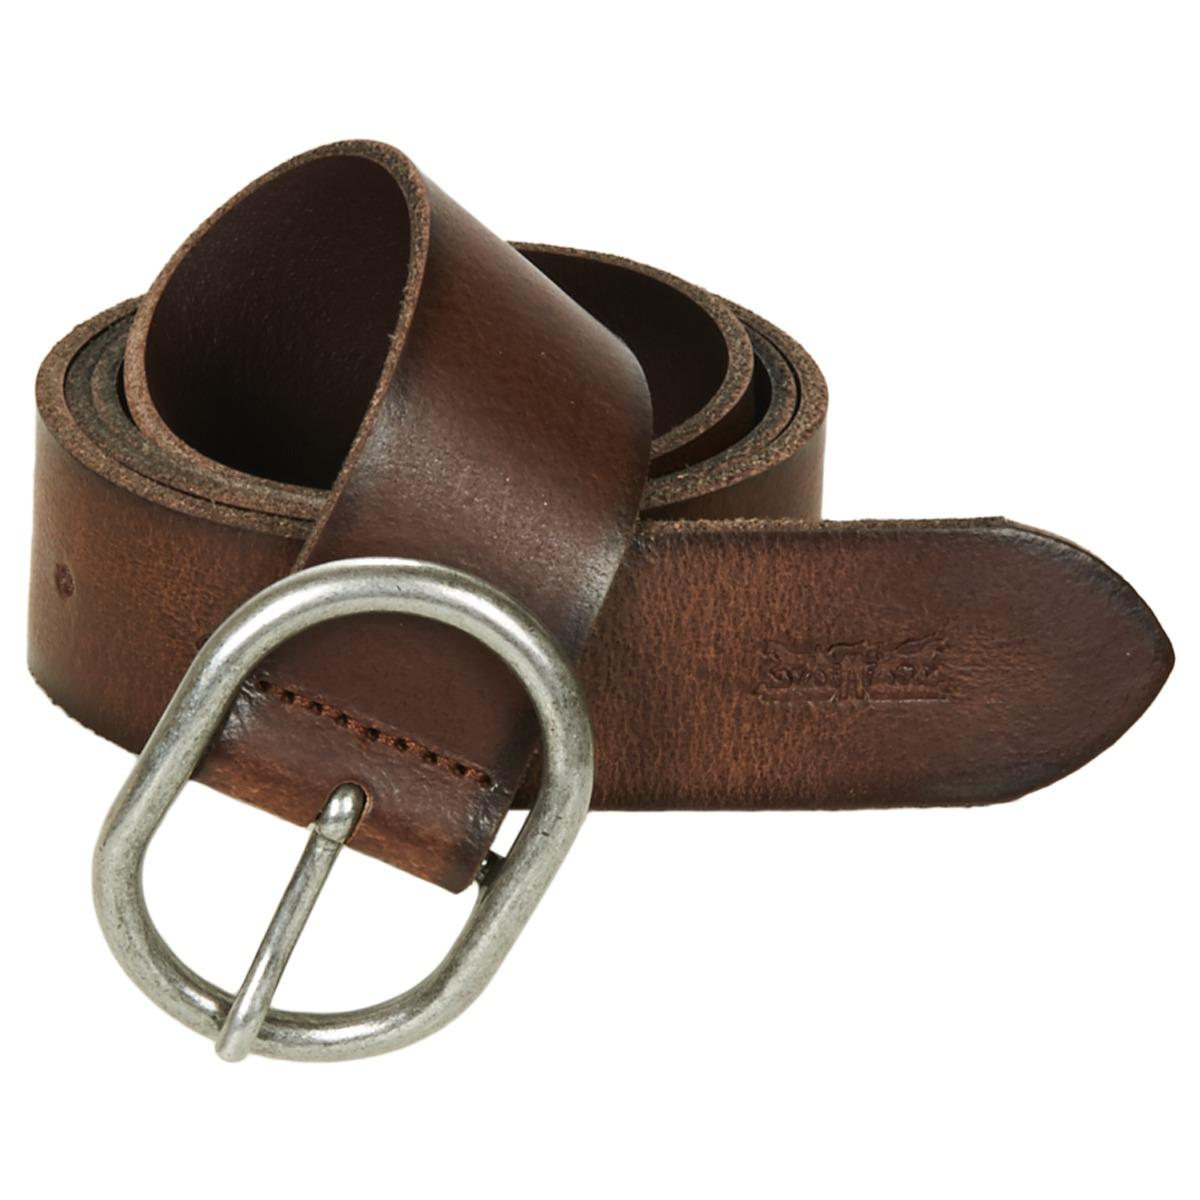 Levi s Levis Calneva Women s Belt In Brown in Brown - Save 15.625 ... 143ddfb47bc